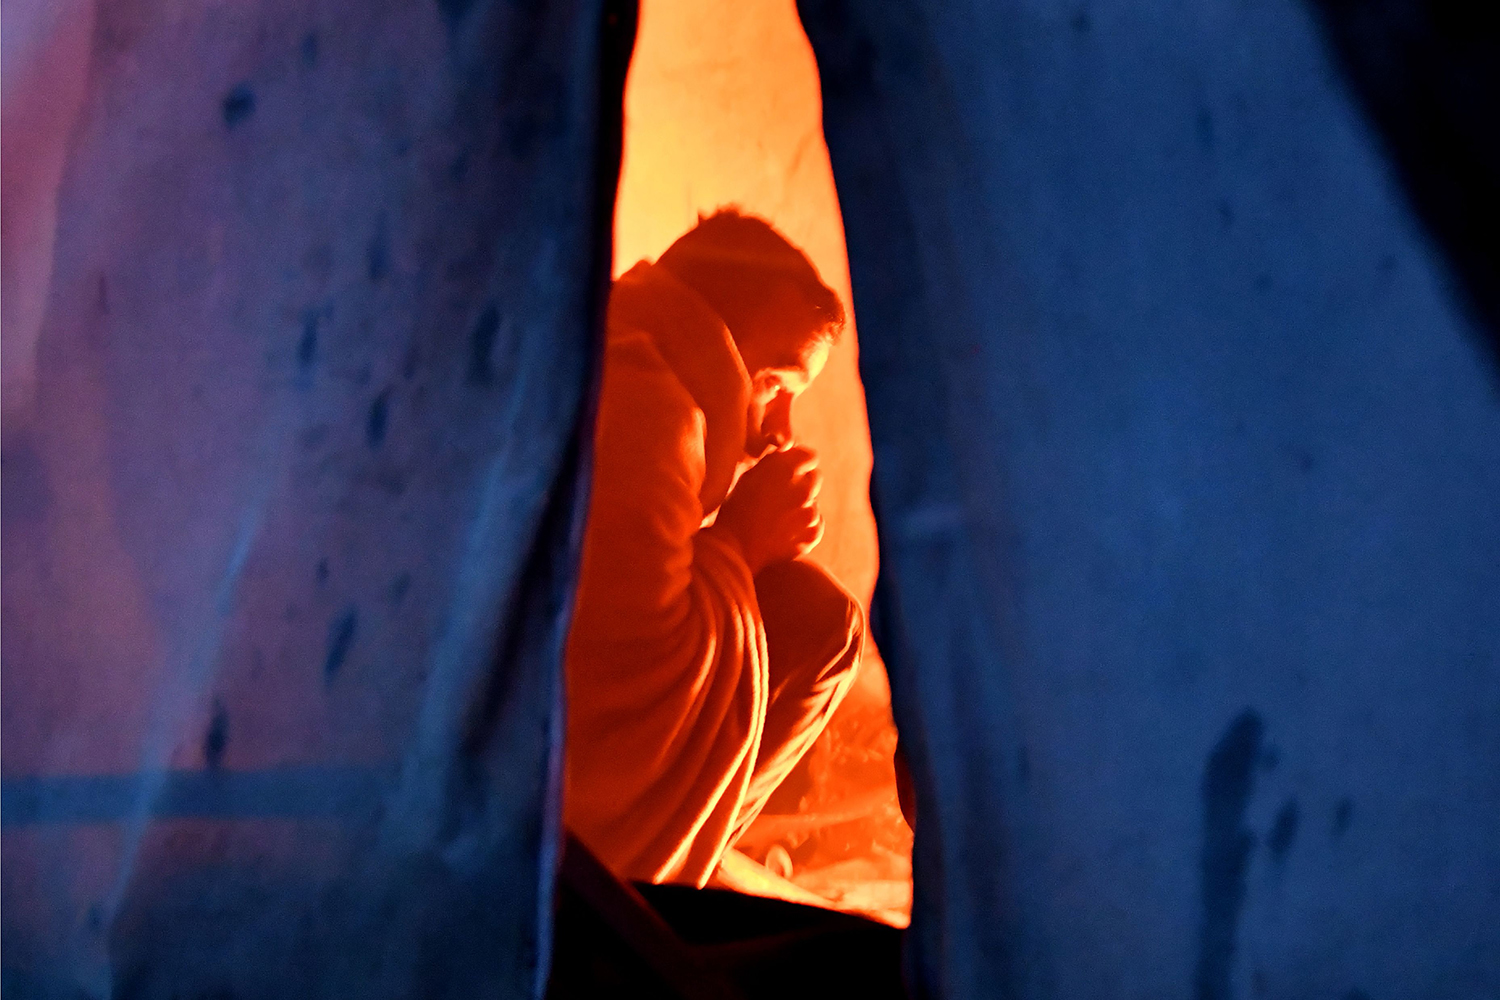 A migrant sits near a small fire inside a tent at camp Vucjak on the outskirts of the city of Bihac, in northern Bosnia, on Nov. 19. ELVIS BARUKCIC/AFP via Getty Images